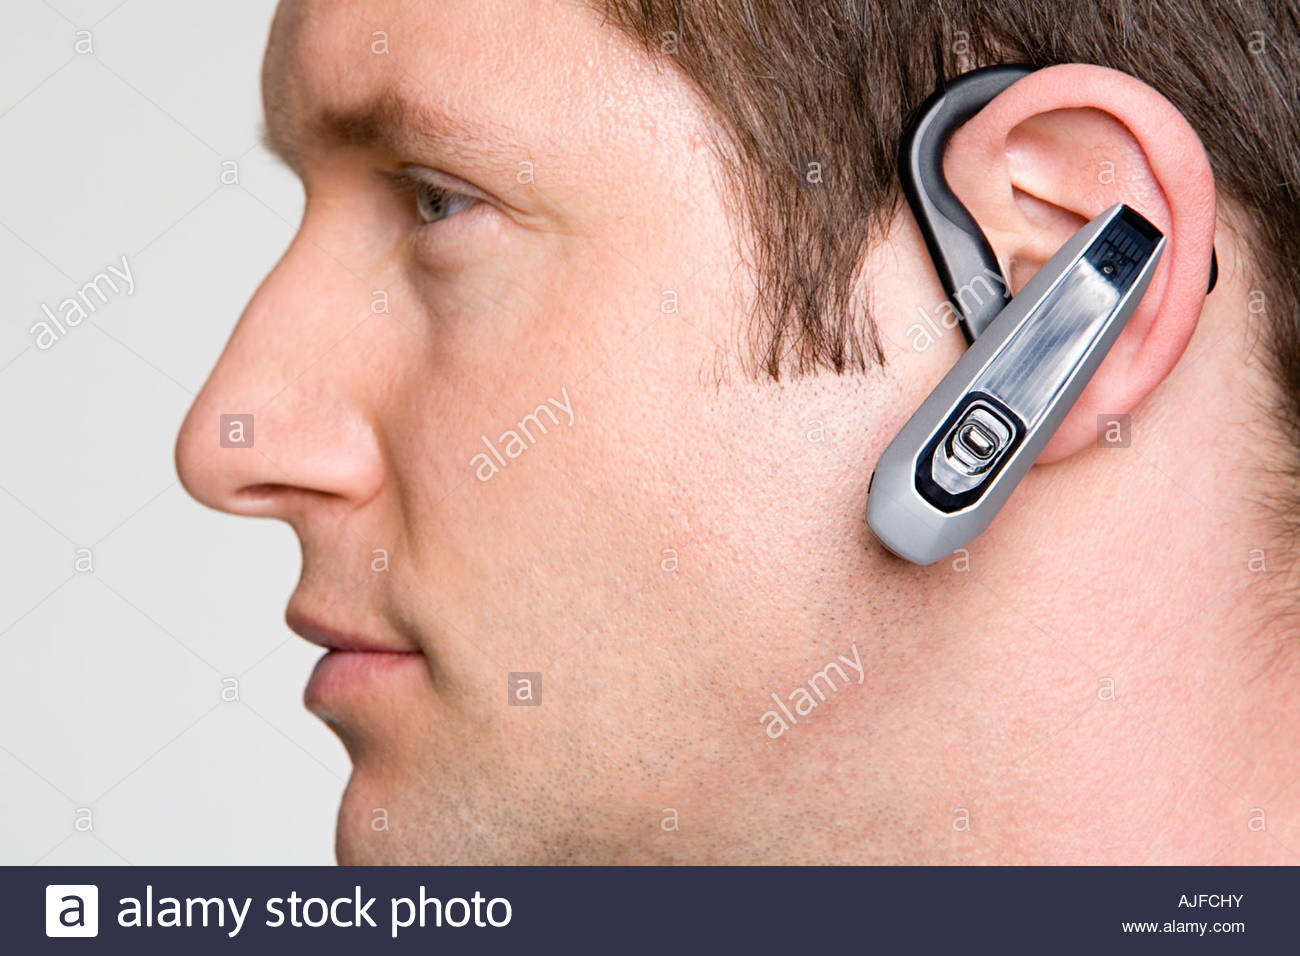 Man using hands free device - Stock Image